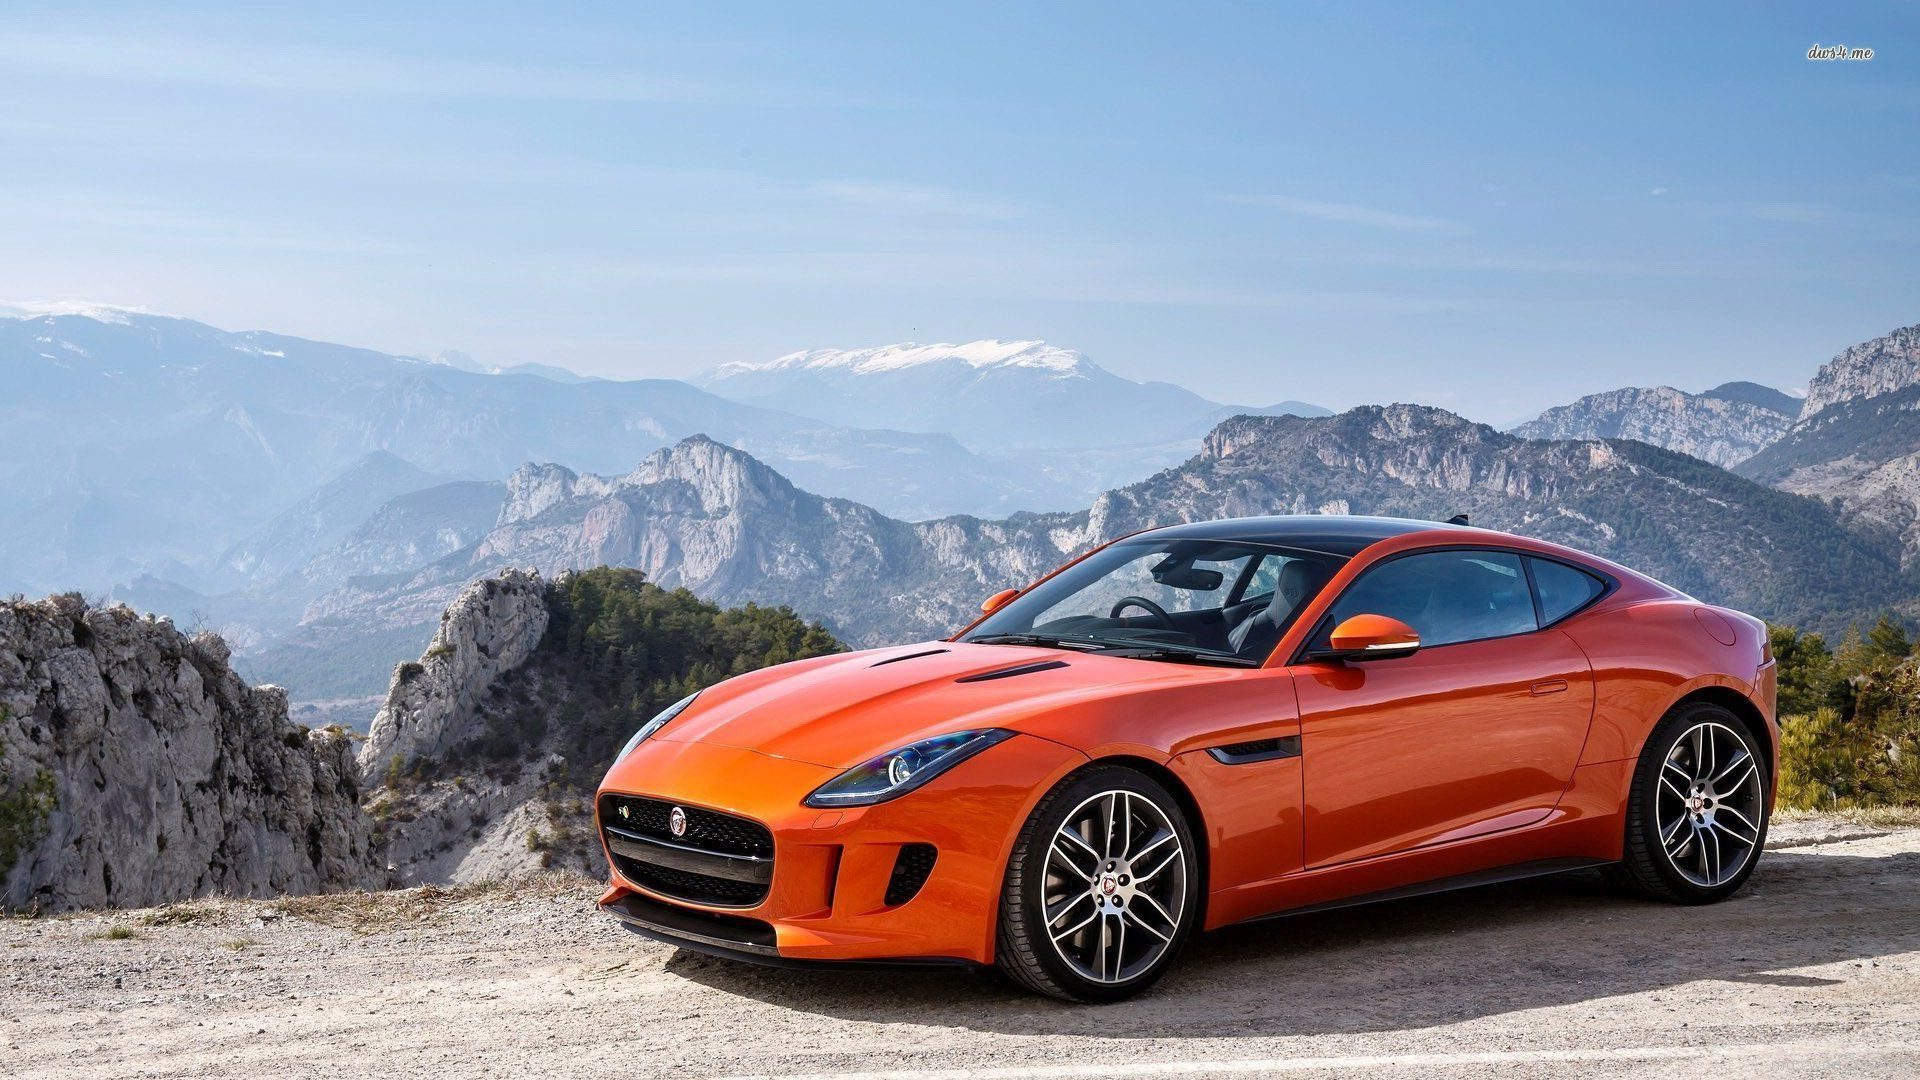 Jaguar F Type Coupe wallpaper 1280x800 Jaguar F Type Coupe wallpaper 1920x1080